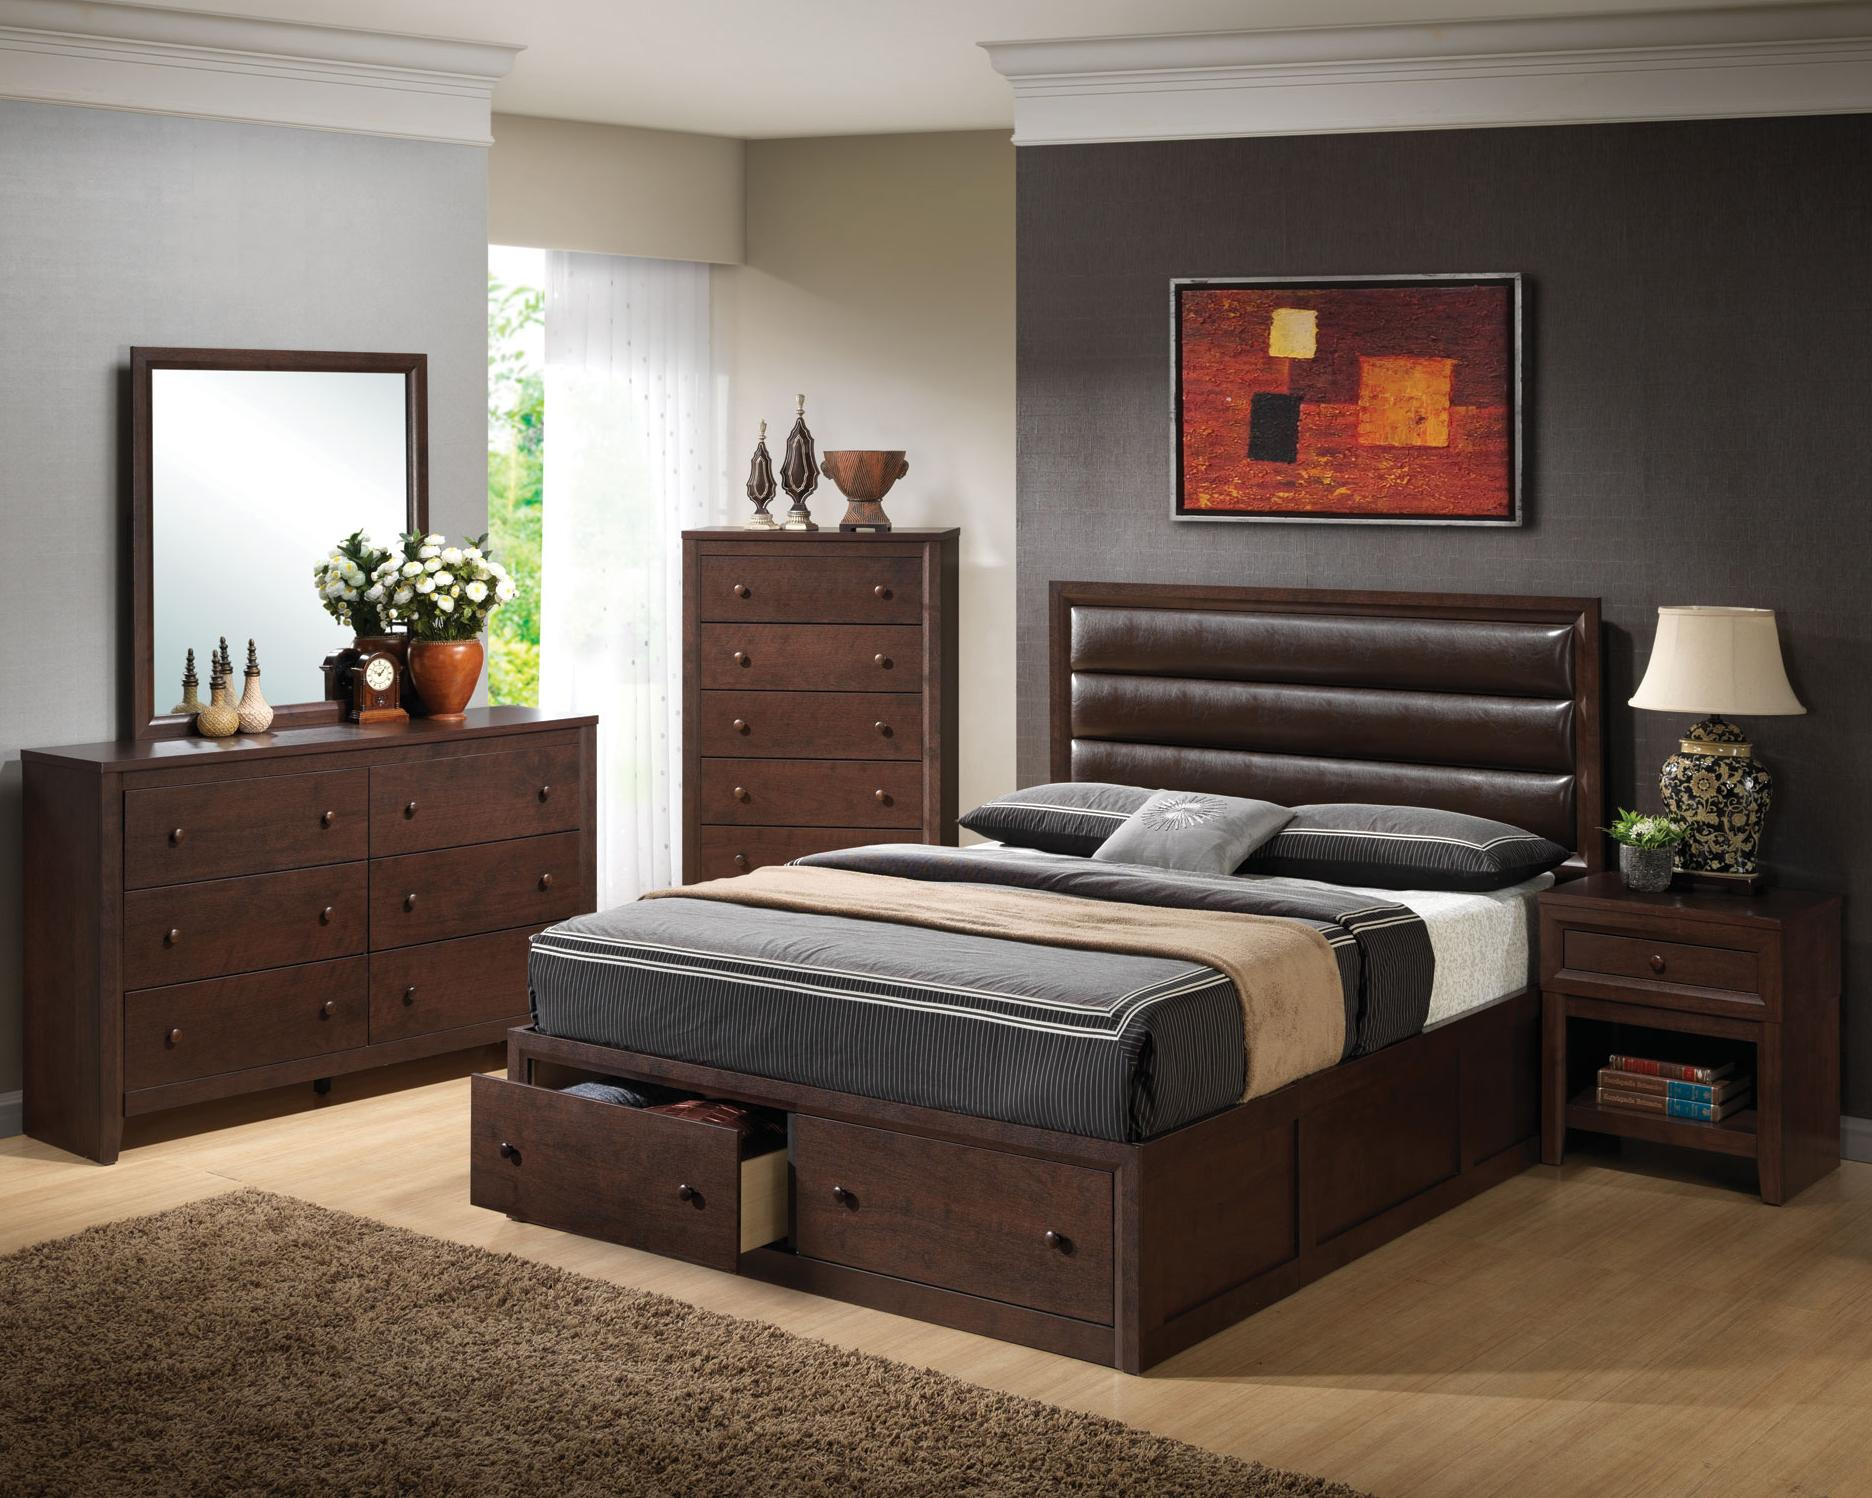 Coaster Remington California King Bedroom Group - Item Number: 202310 CK Bedroom Group 1